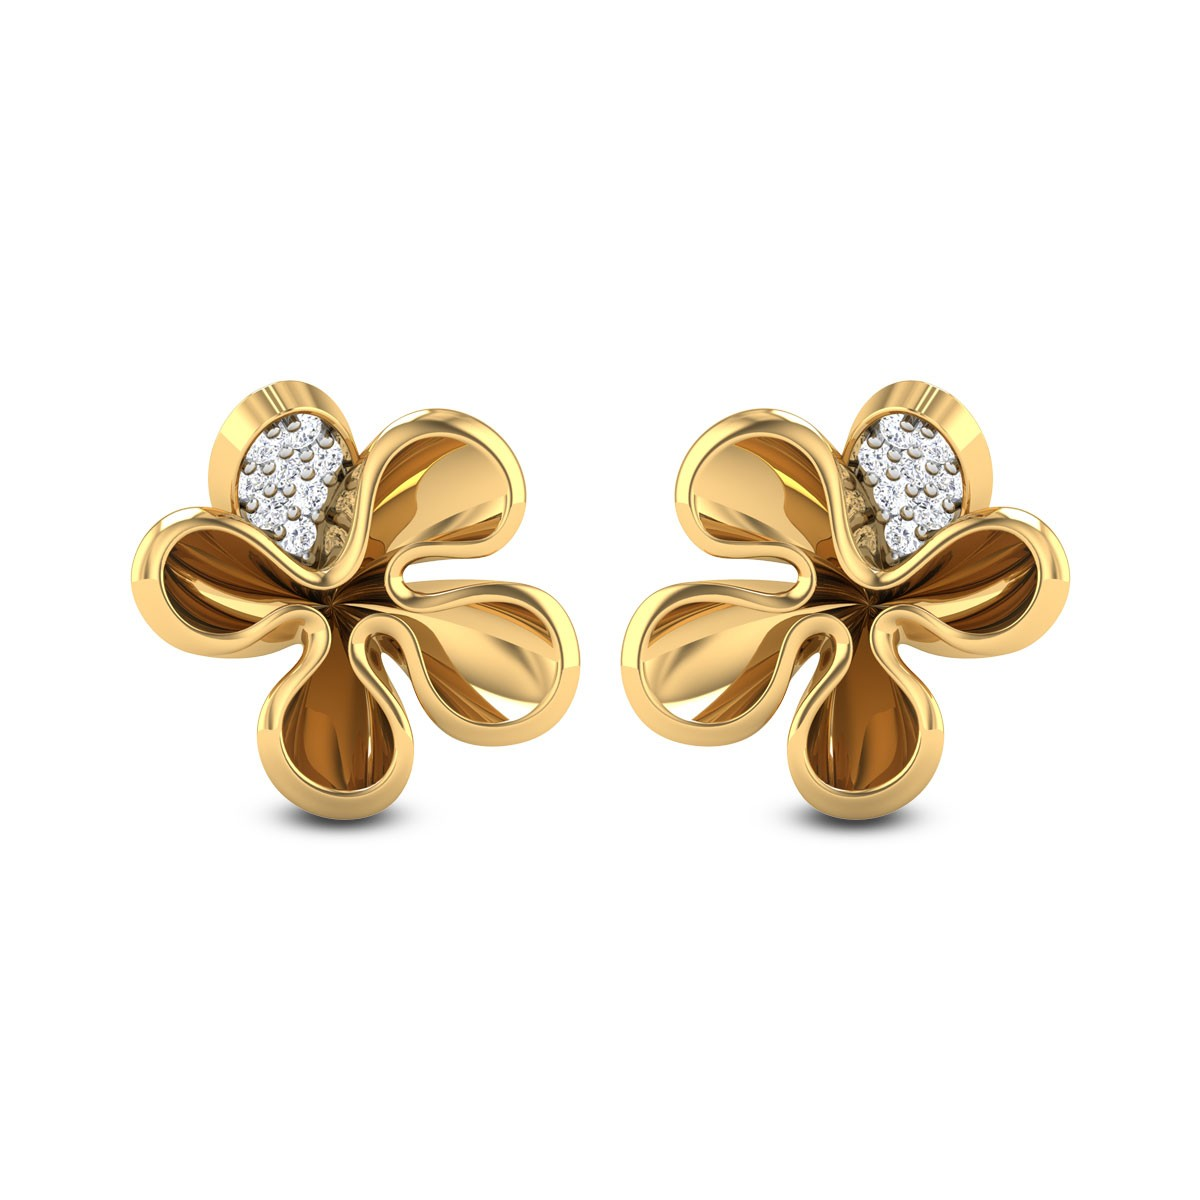 Vihan Diamond Earrings